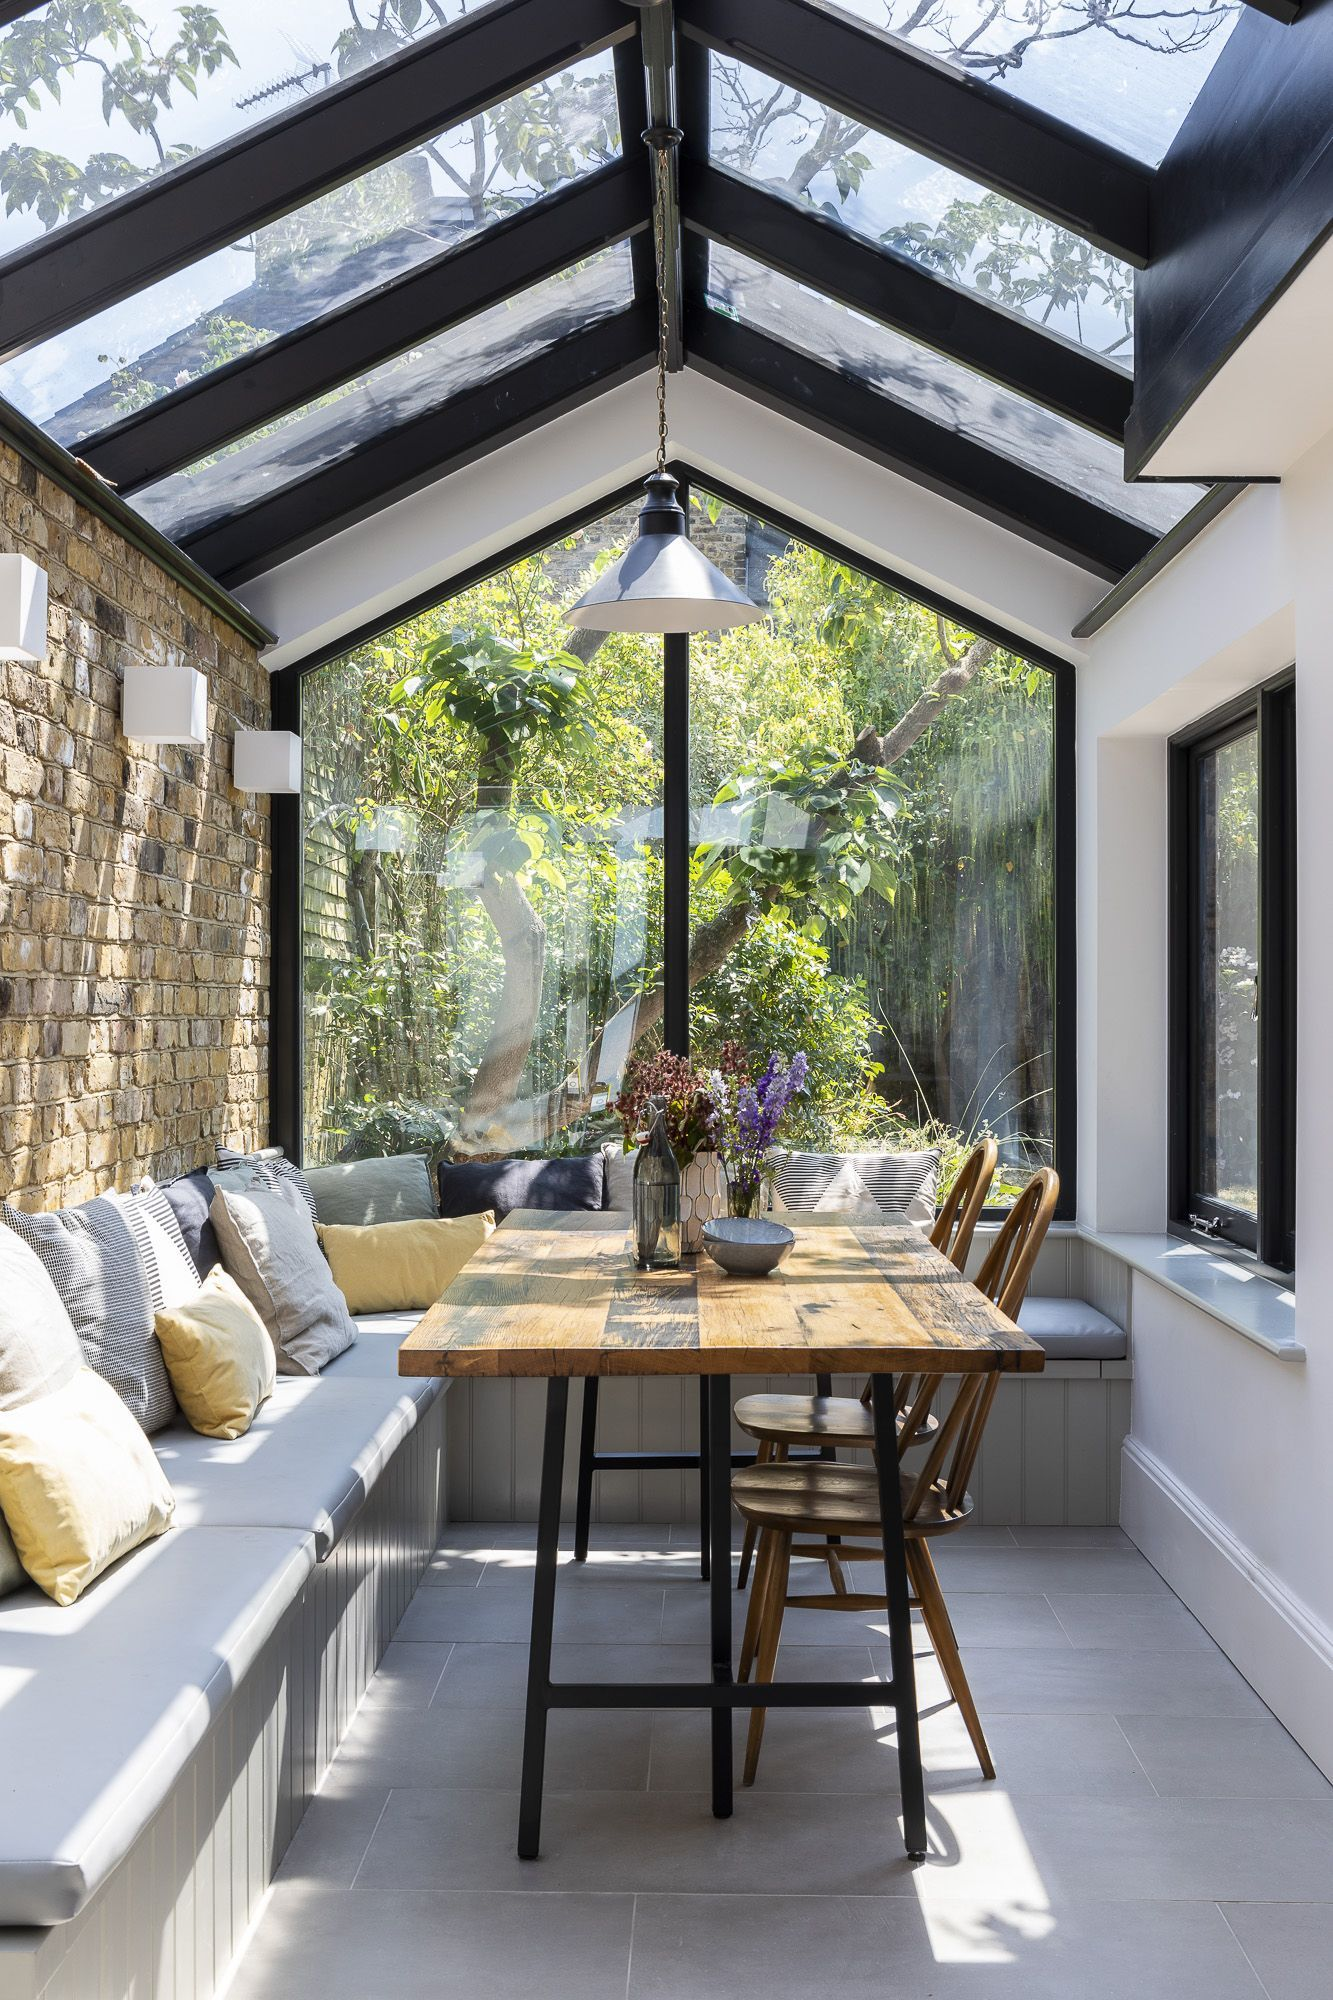 Interior design by imperfect interiors in this large open plan kitchen diner extension barnes also splendid barndominium floor plans for your home rh pinterest